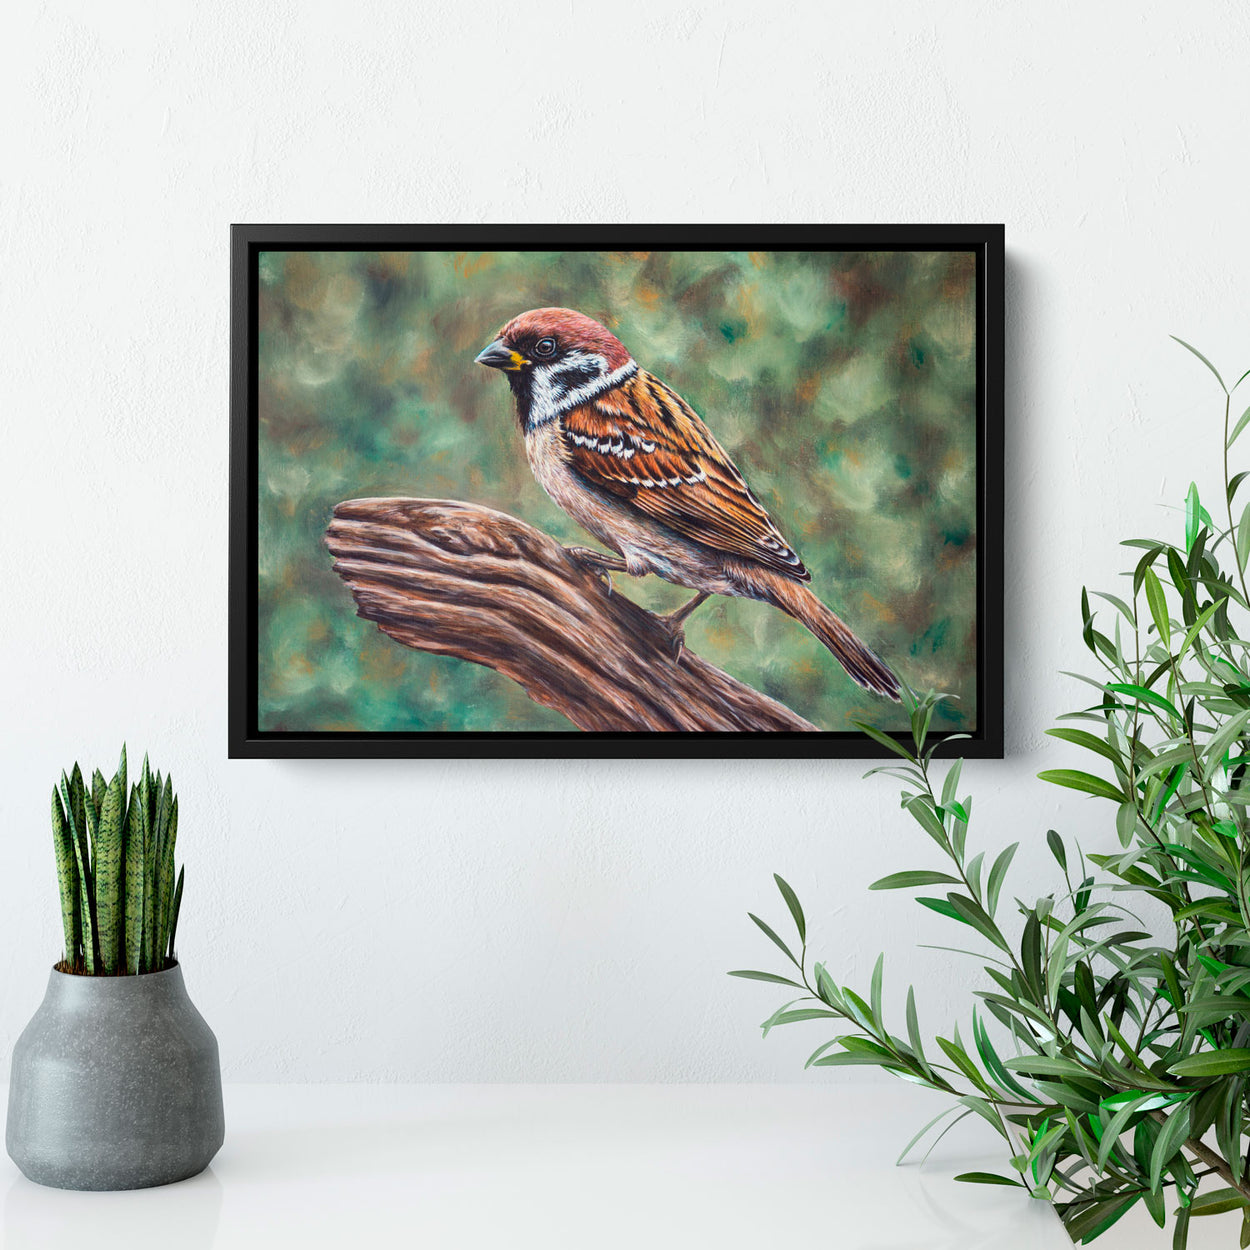 Tree Sparrow Painting on Wall - The Thriving Wild